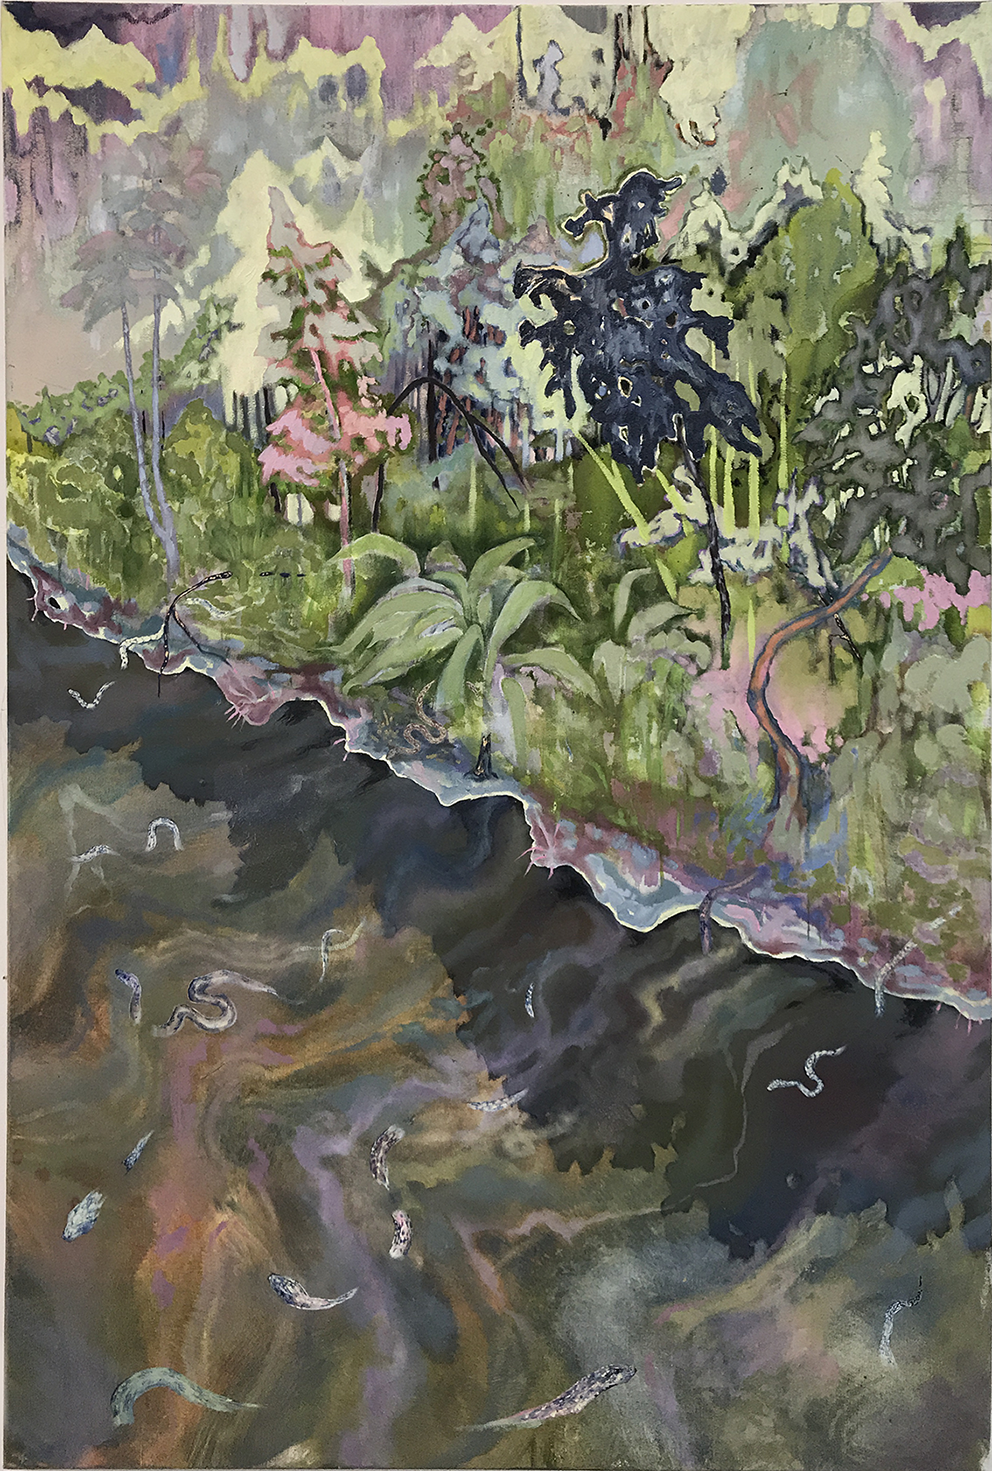 Tuesday Riddell, Water Snake's, Oil on Canvas, 150 x 100 x 5,  http://tuesdayriddell.com